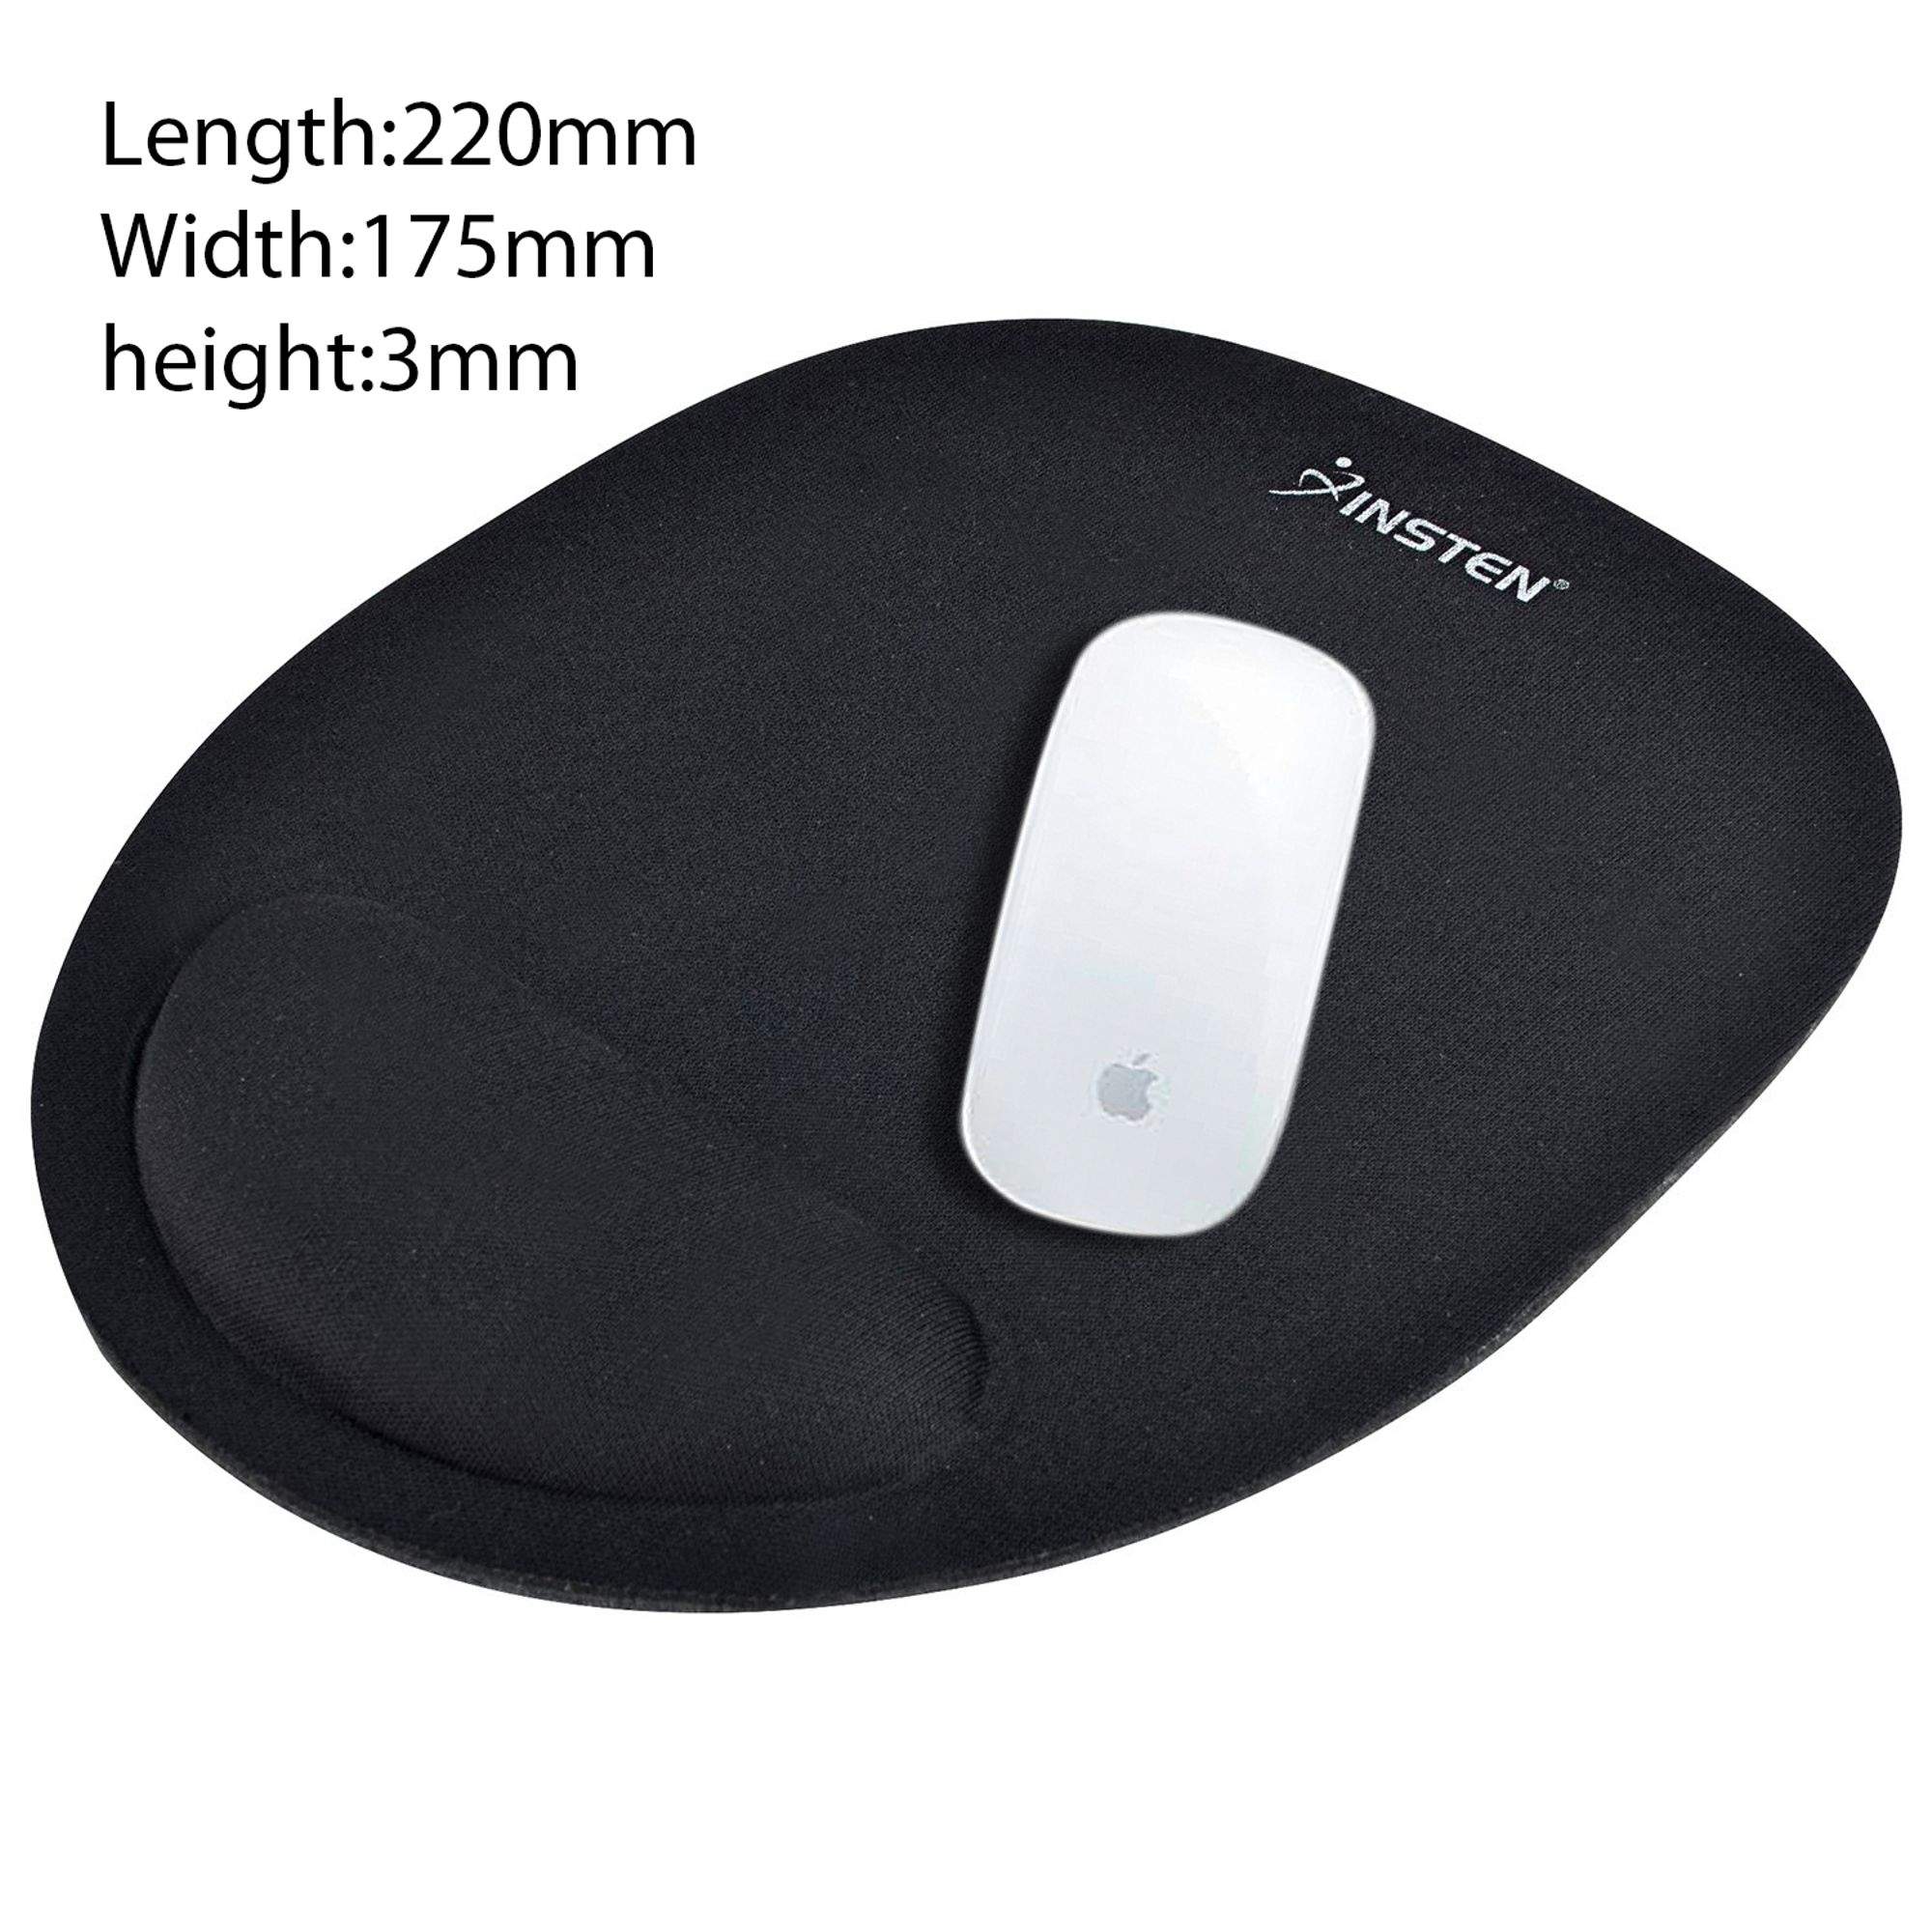 Insten 2 Pcs Wrist Rest Support Comfort Mouse Pad For Optical/ Trackball Mouse - Black